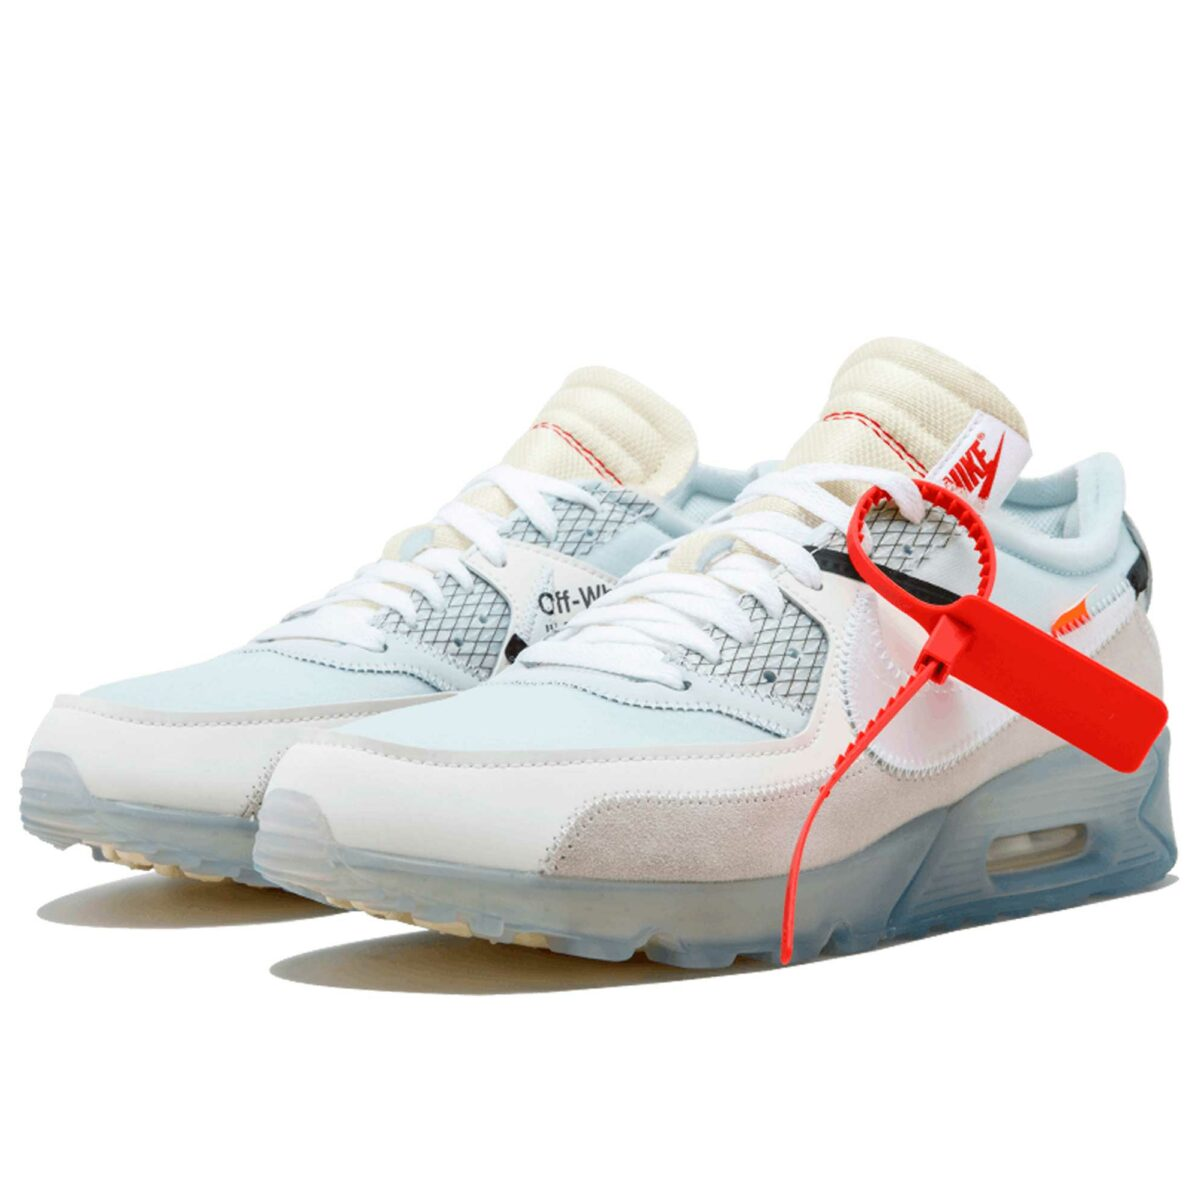 off white x nike air max 90 sail white muslin AA7293_100 купить